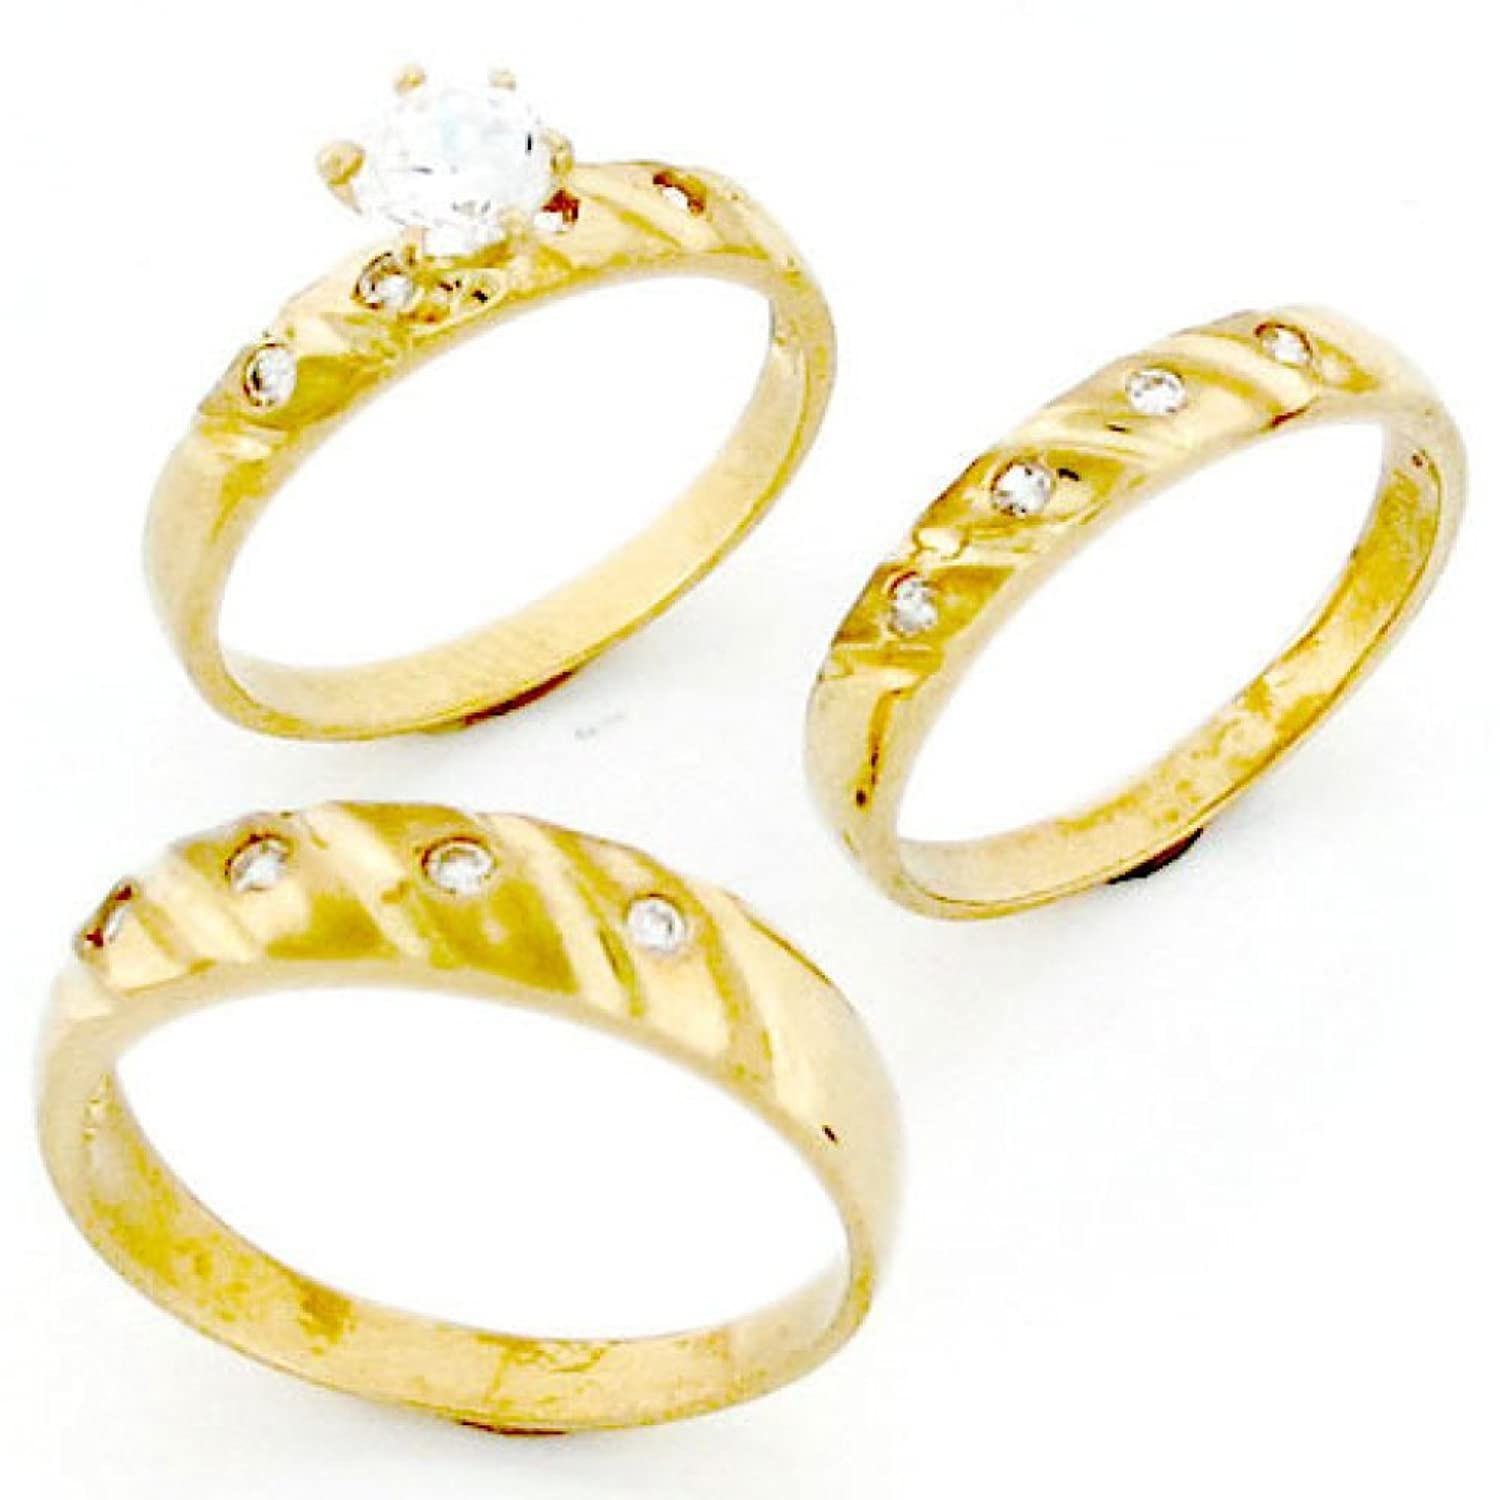 10k Gold His & Hers Trio 3 Piece CZ Wedding Ring Sets